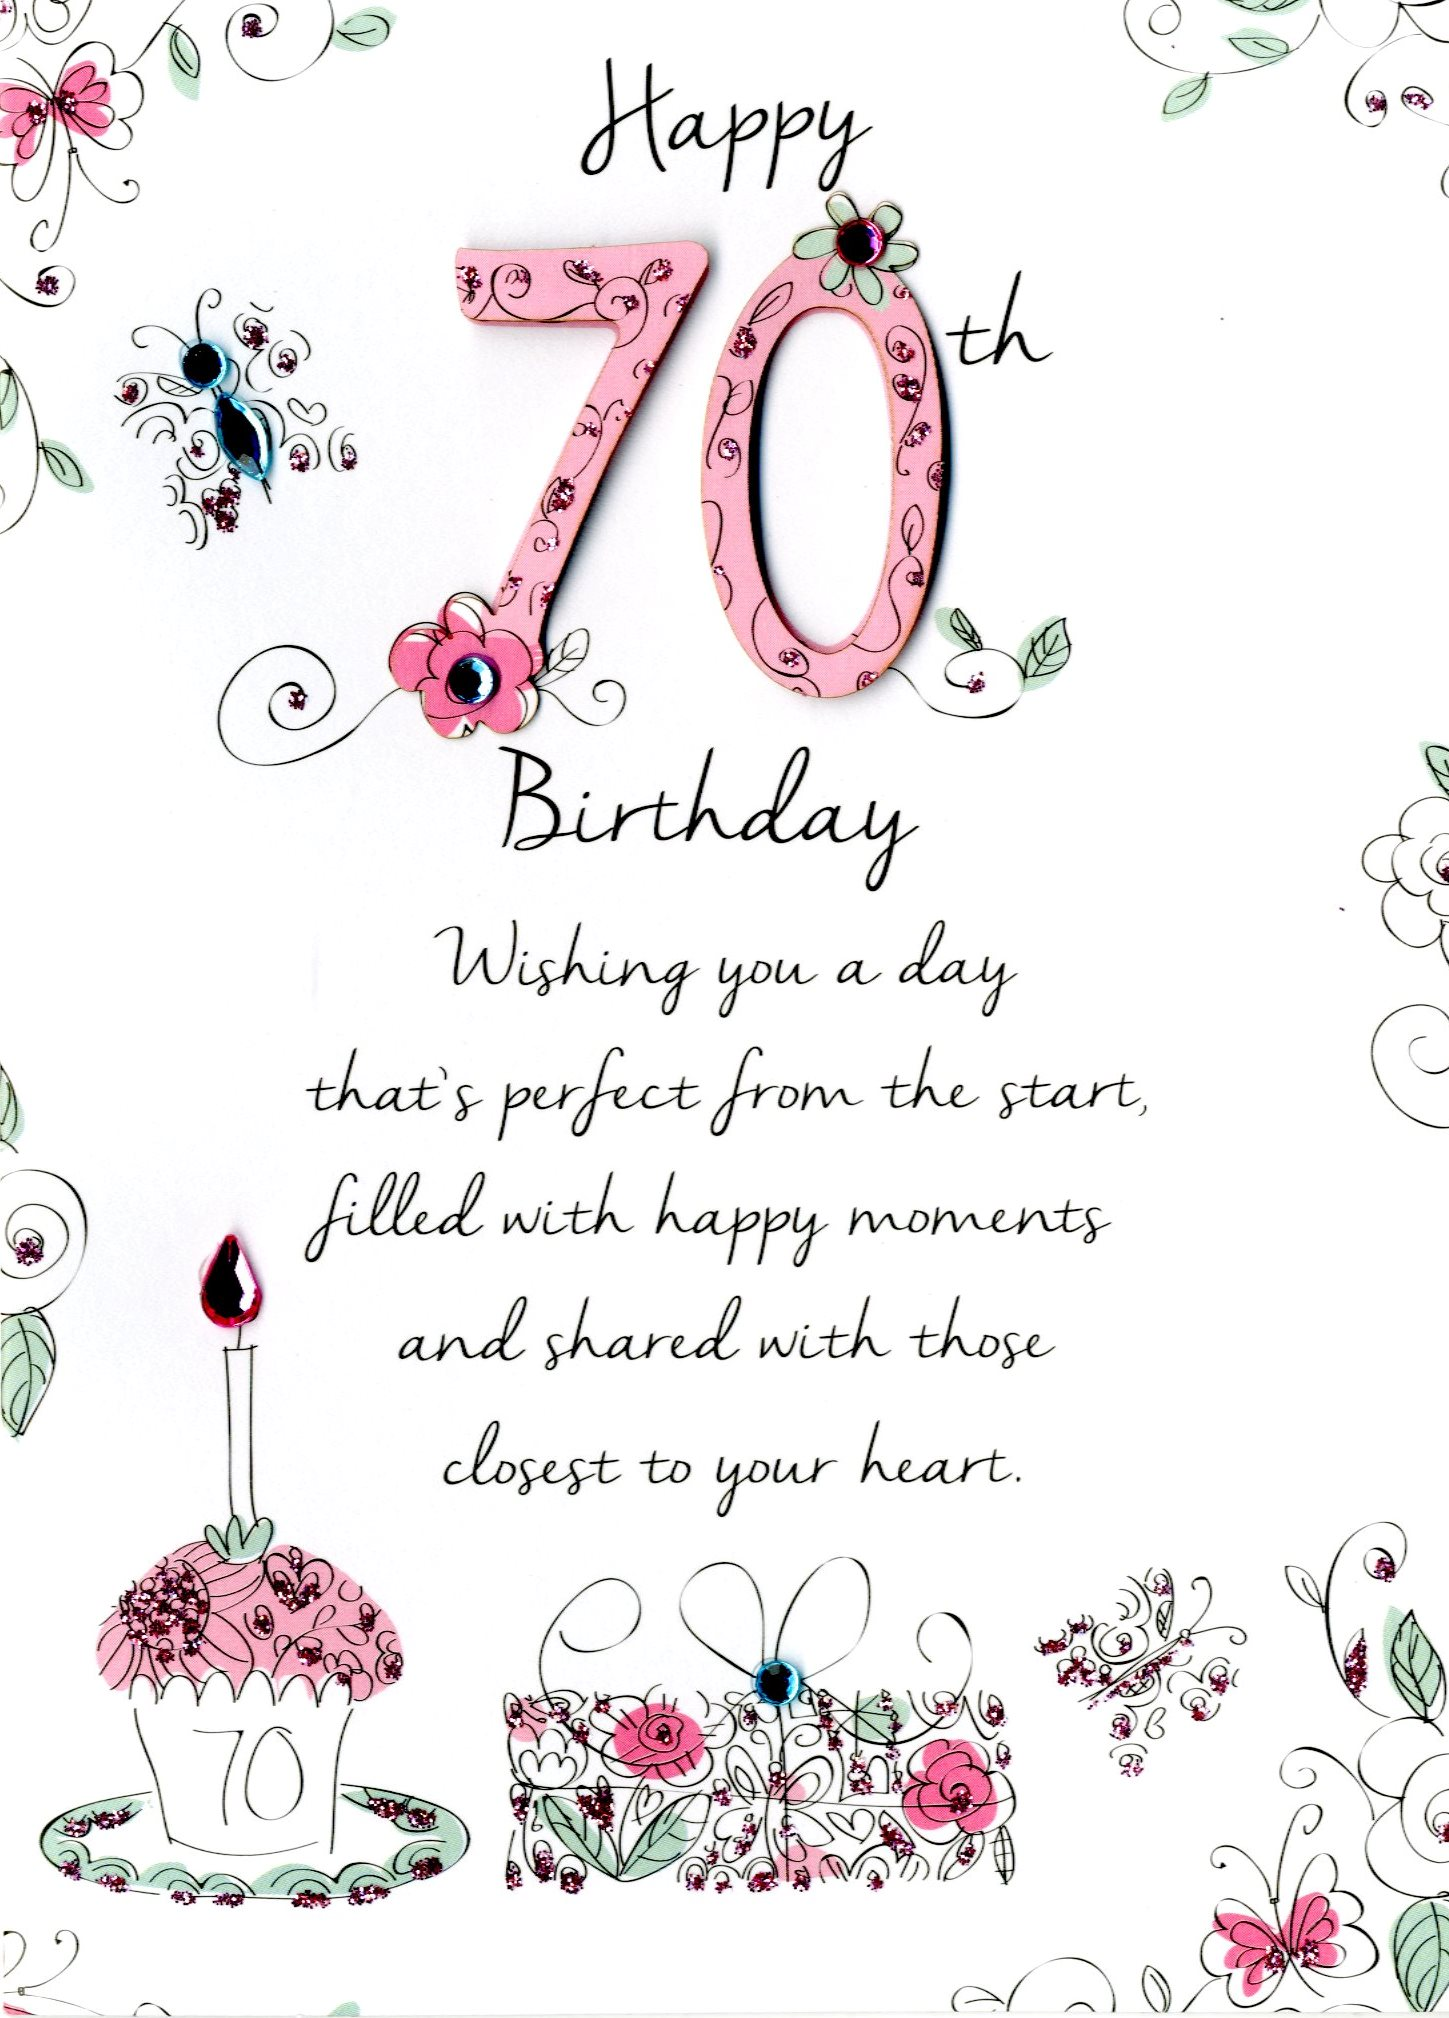 birthday wishes for 70th birthday card ; JT032